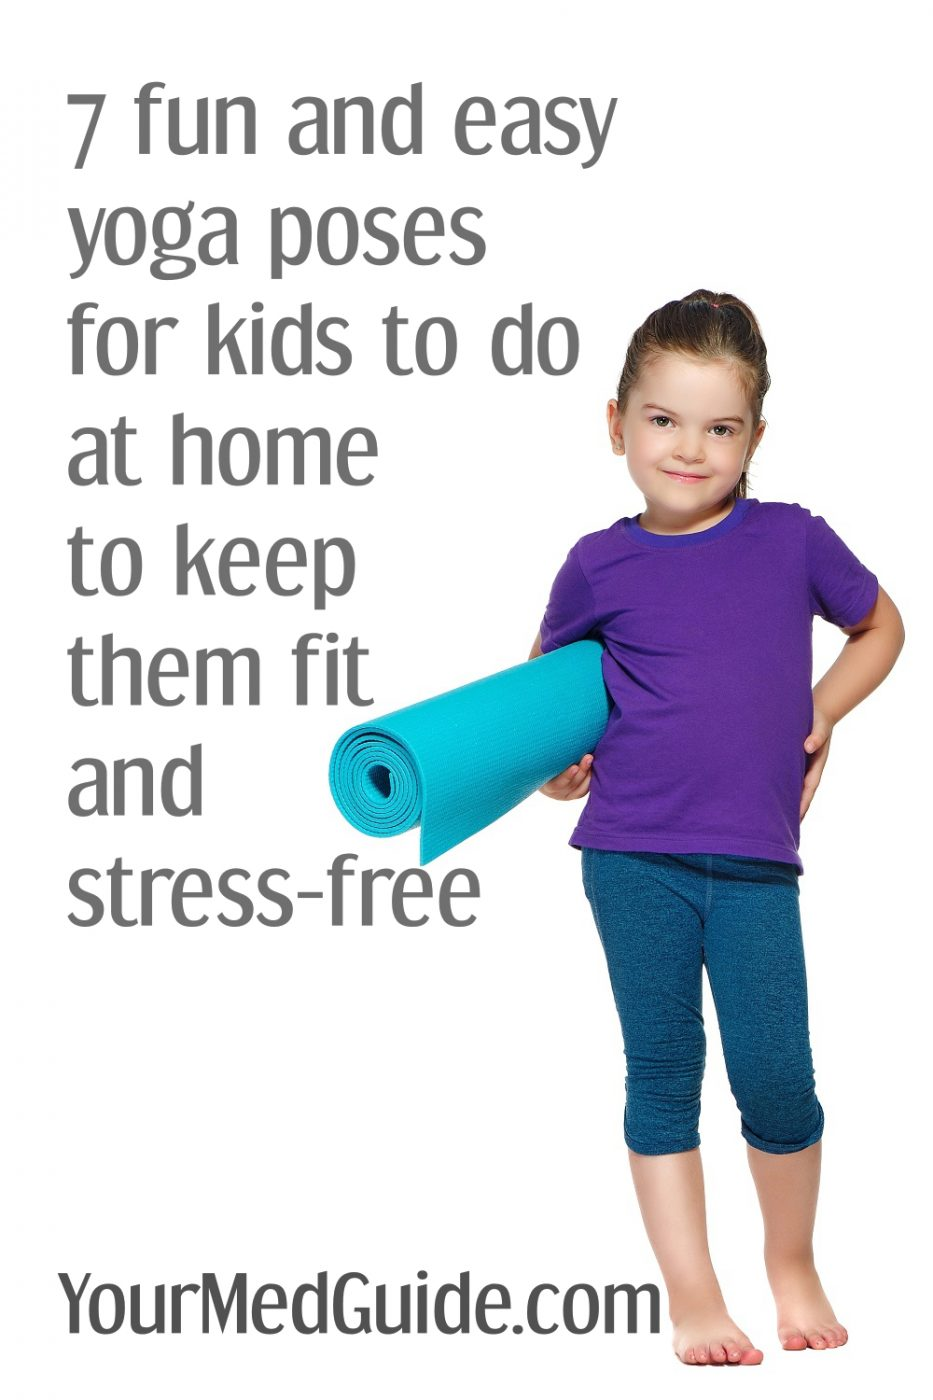 7 fun yoga poses for kids to do at home